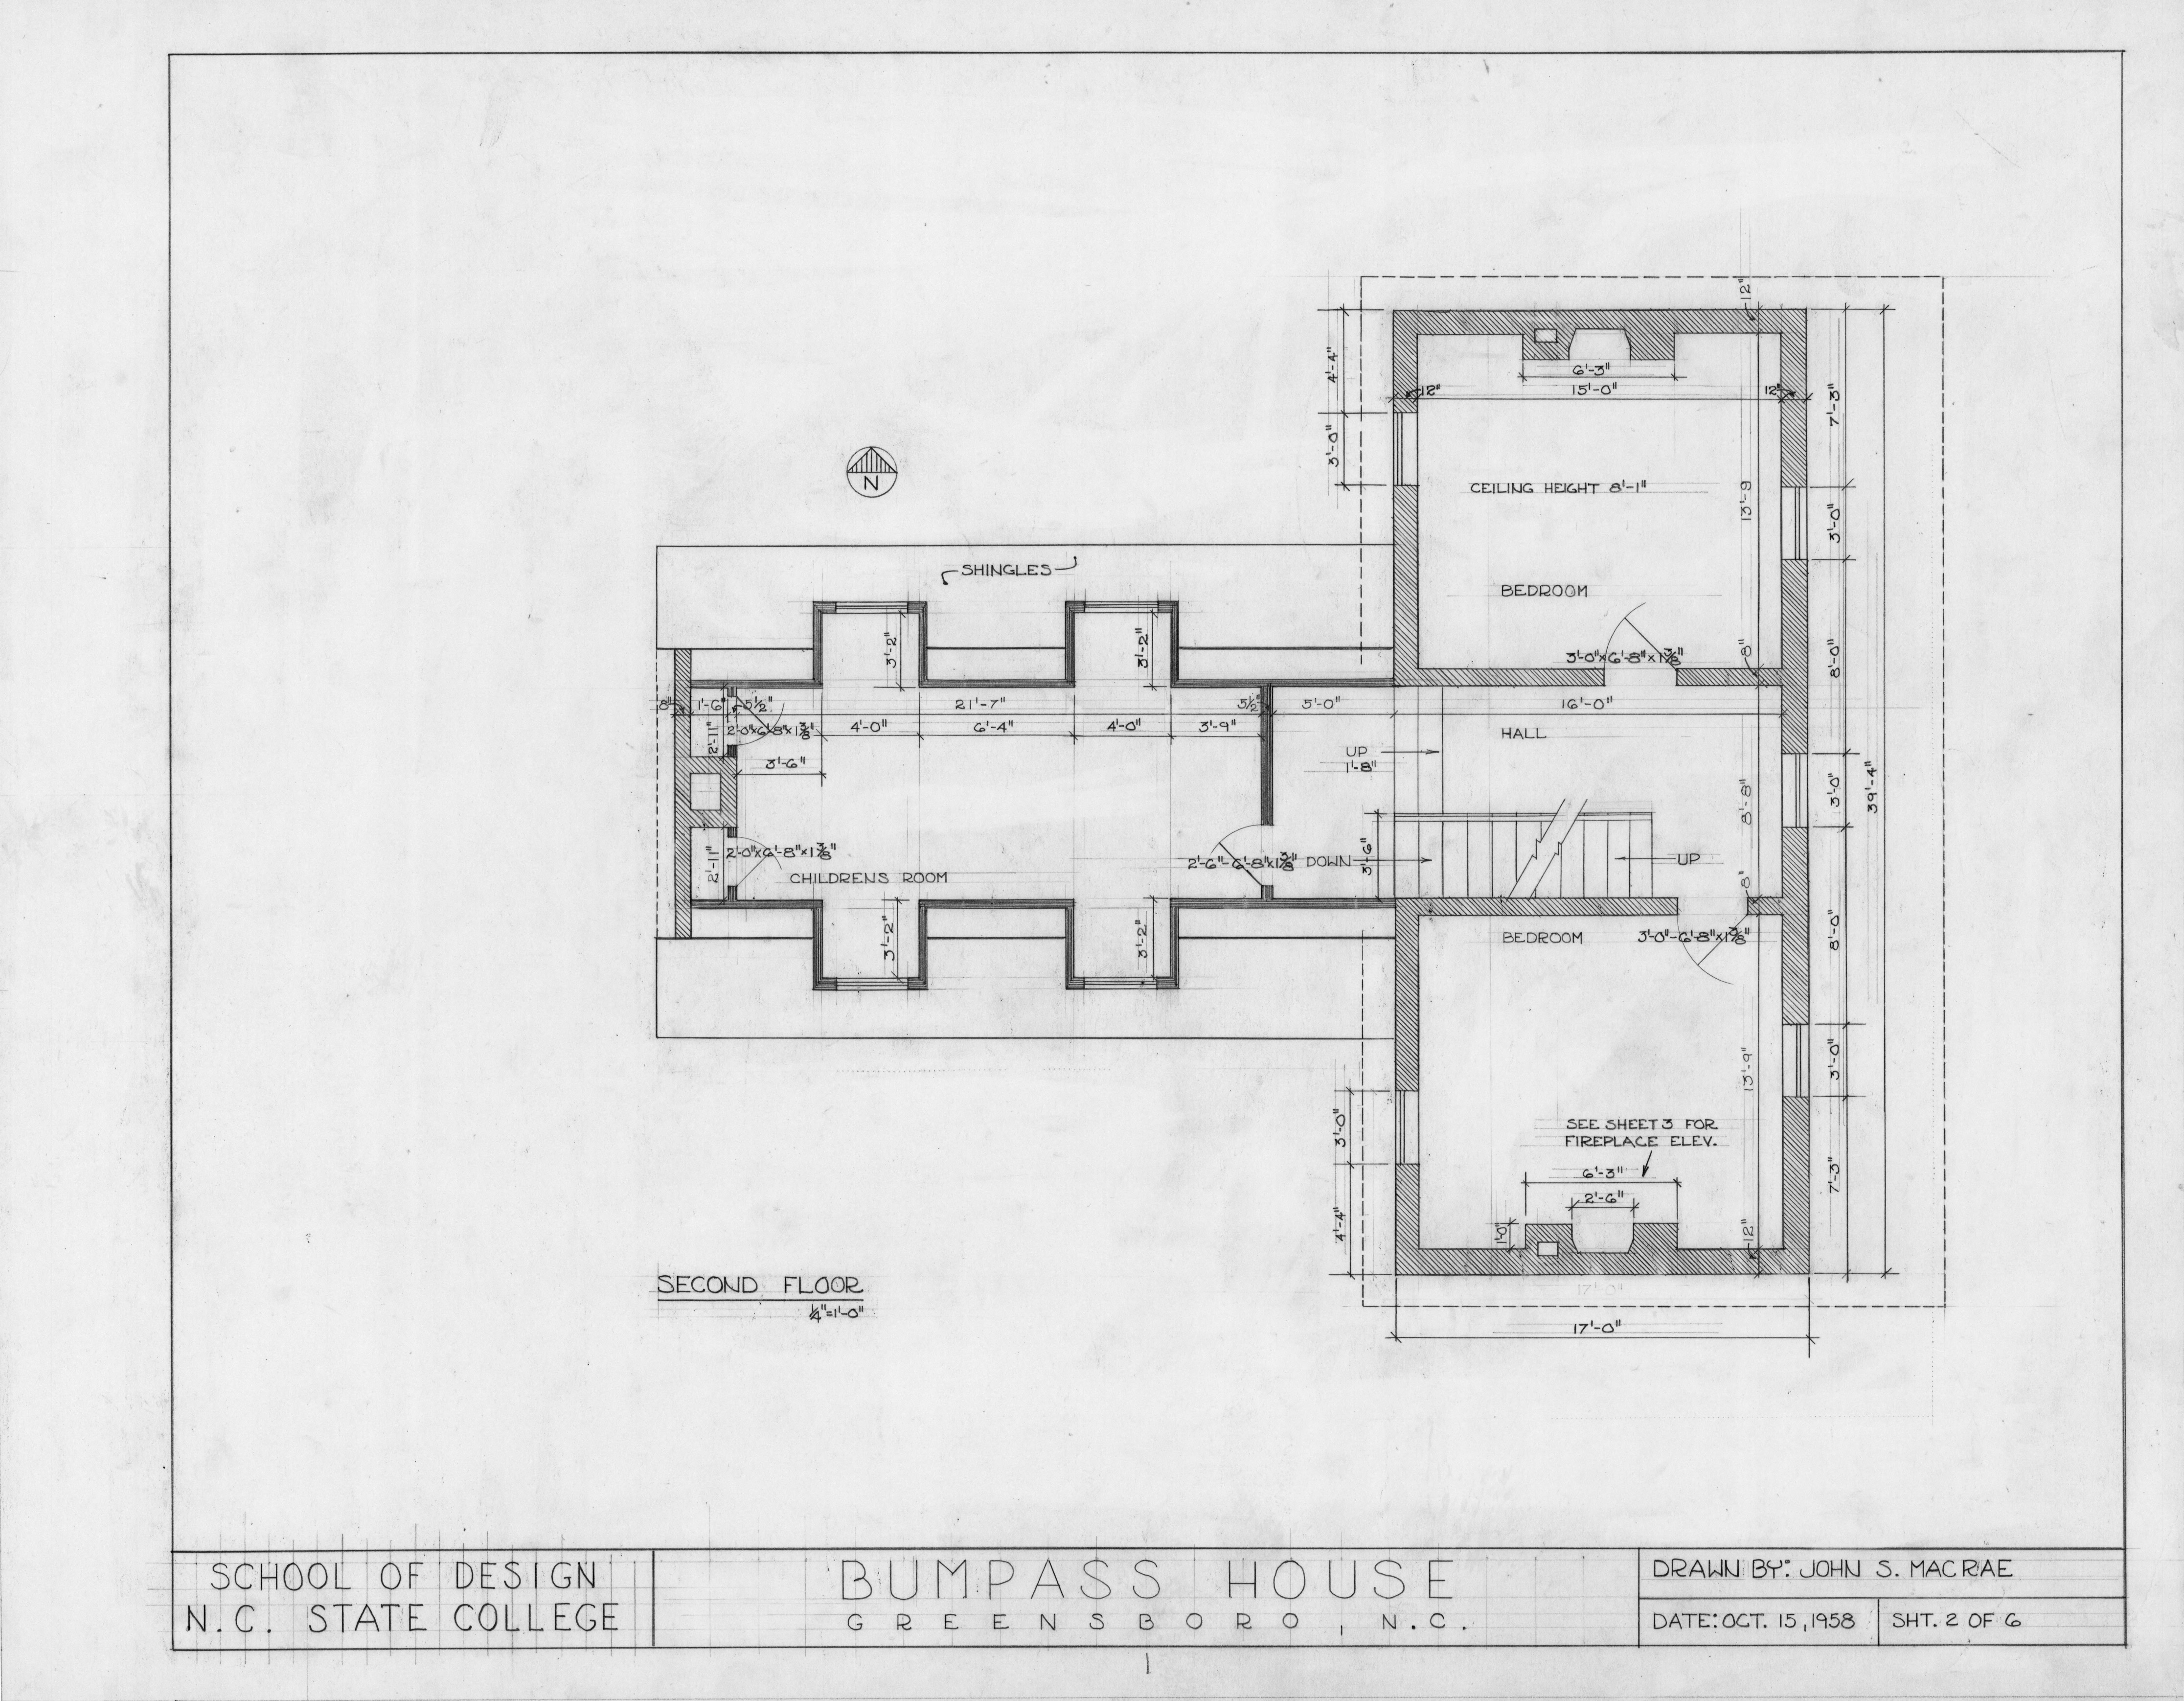 Second Floor Plan Bumpass Troy House Greensboro North